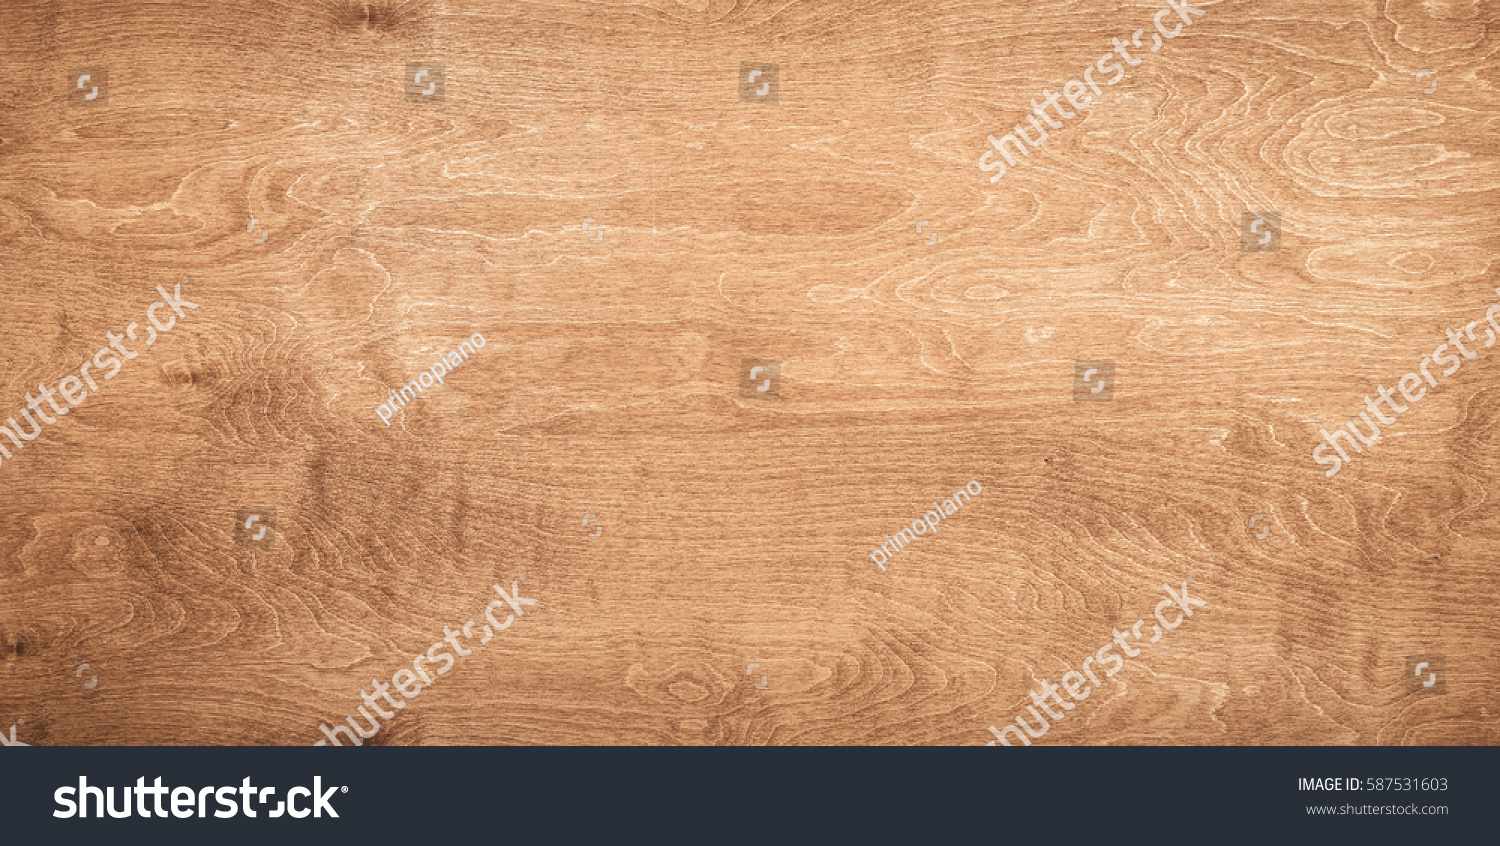 Wood table top texture - Dark Wood Texture Background Surface With Old Natural Pattern Or Dark Wood Texture Table Top View